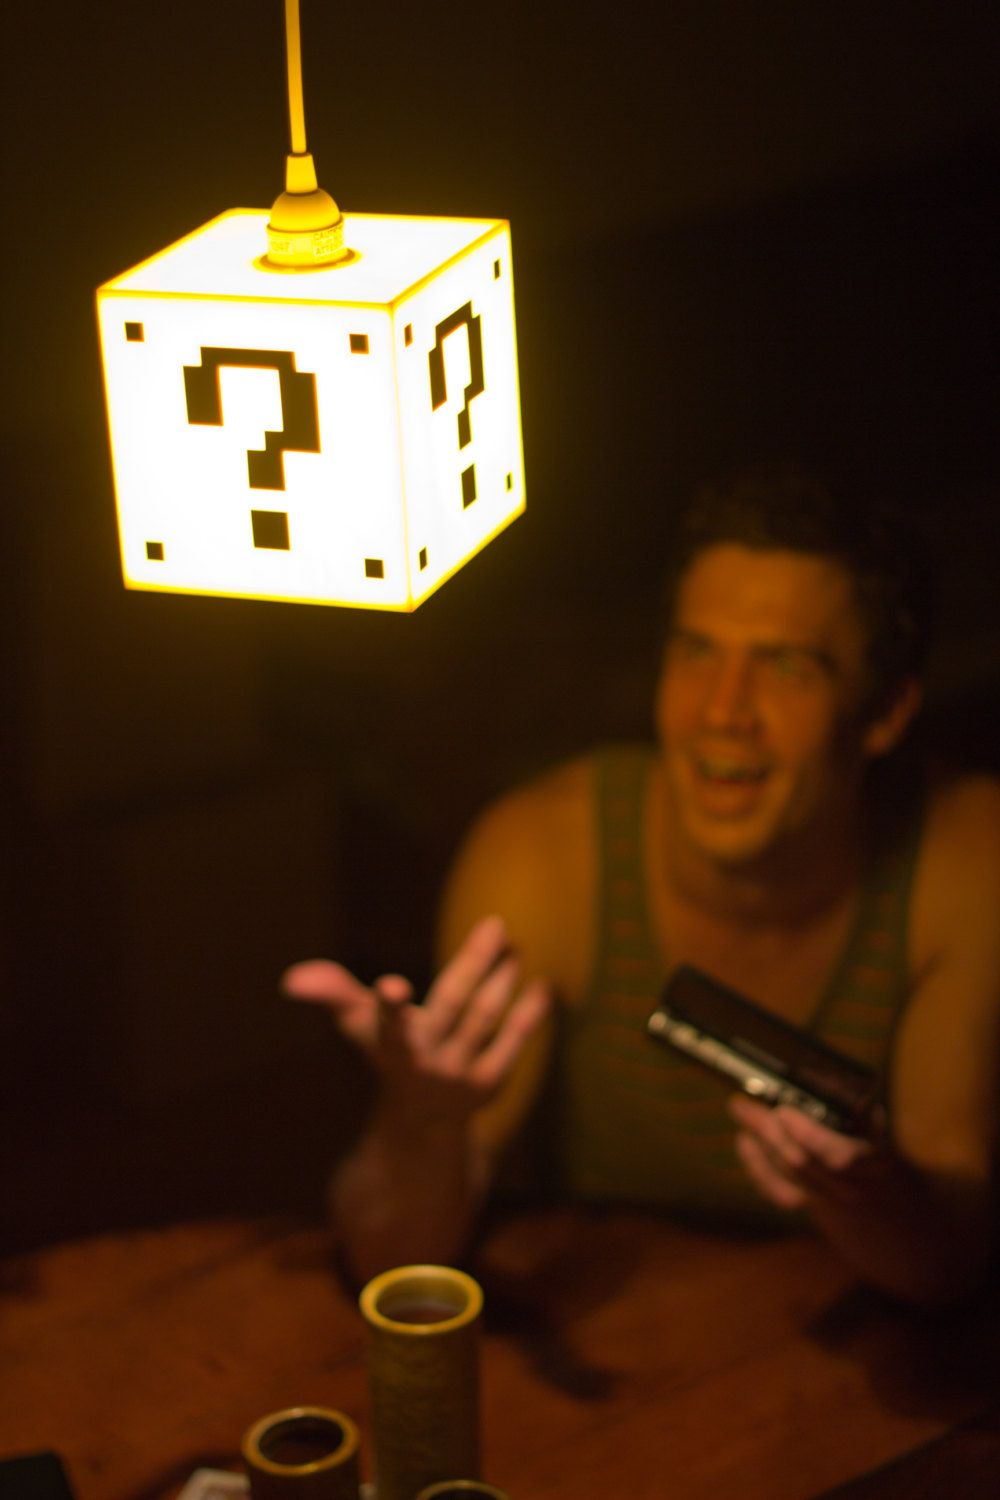 Mario Question Mark Block Hanging Lamp This Or That Questions